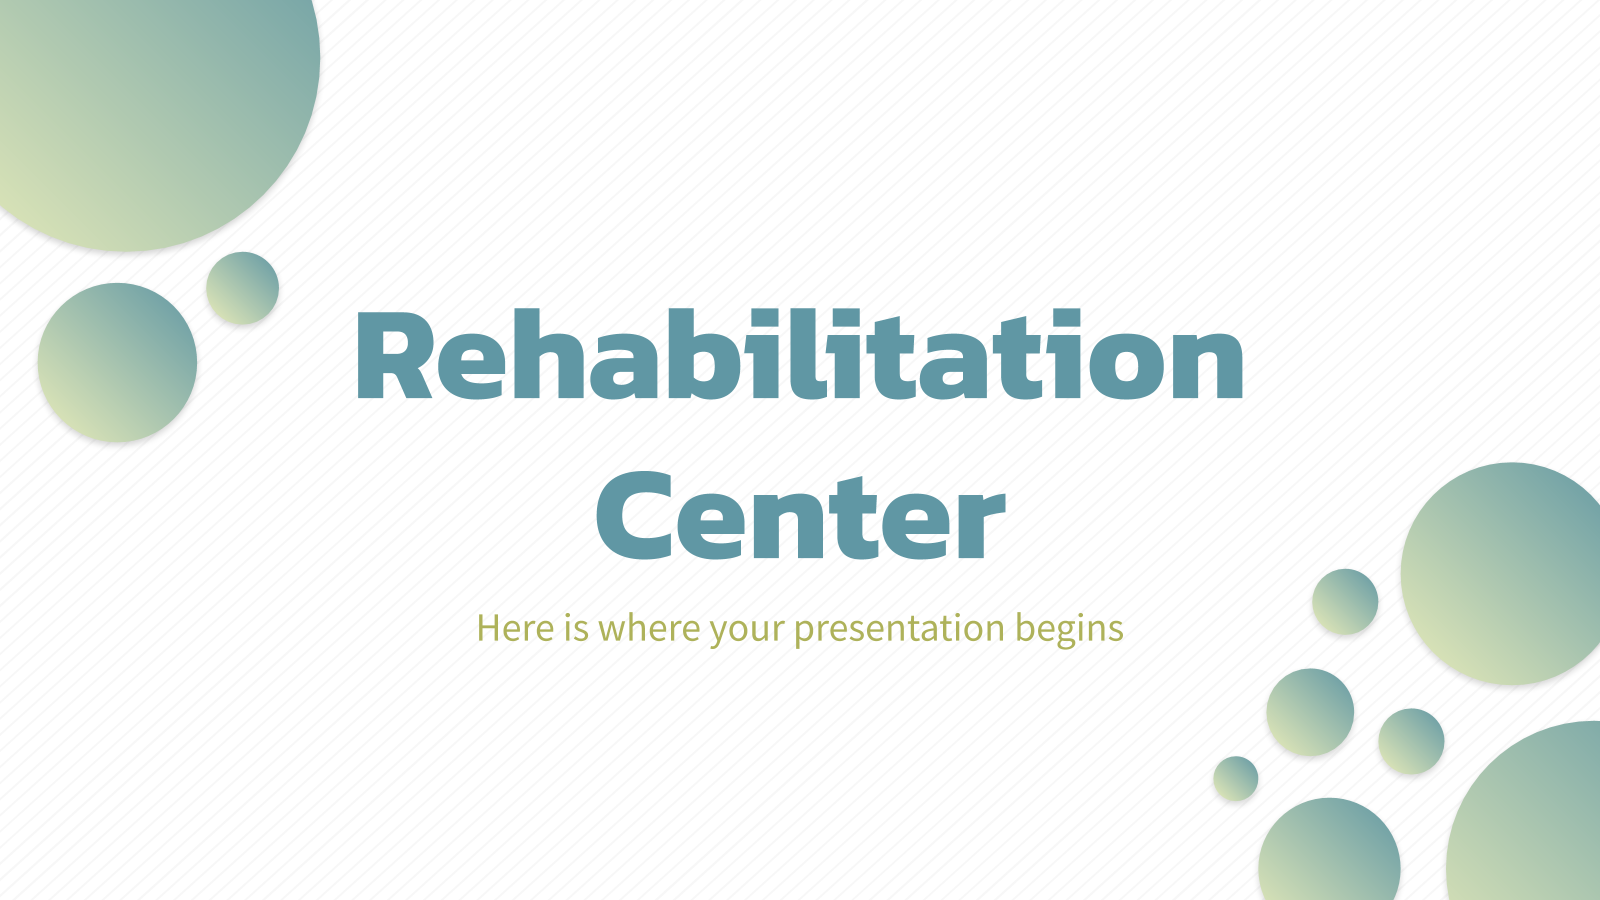 Rehabilitation Center presentation template